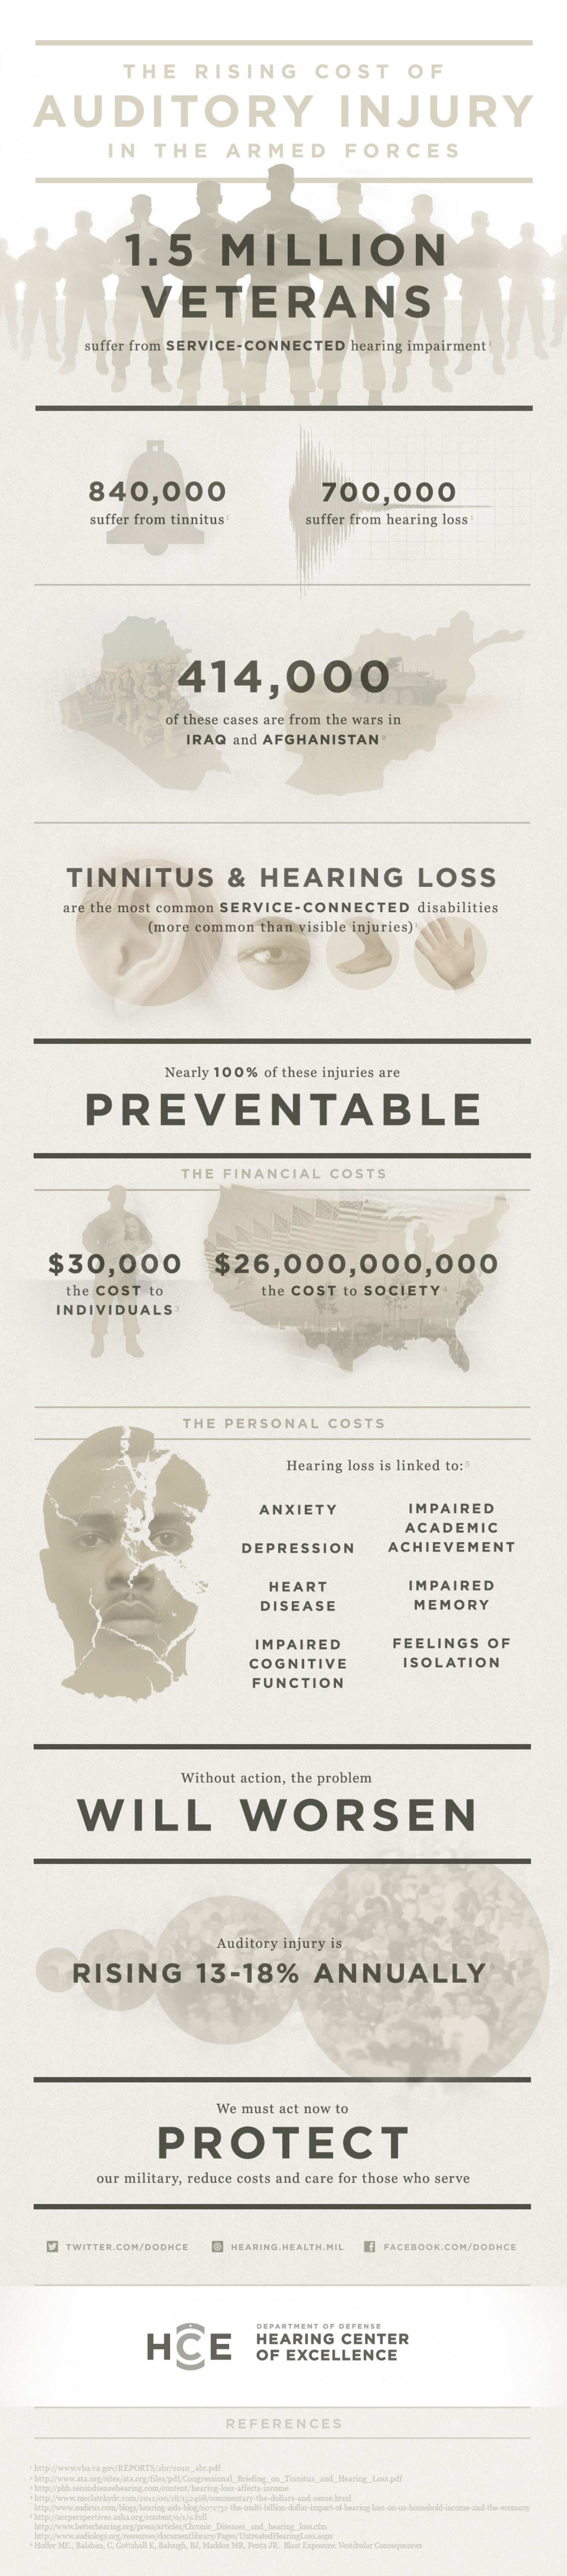 The Rising Cost of Auditory Injury in the Armed Forces Infographic